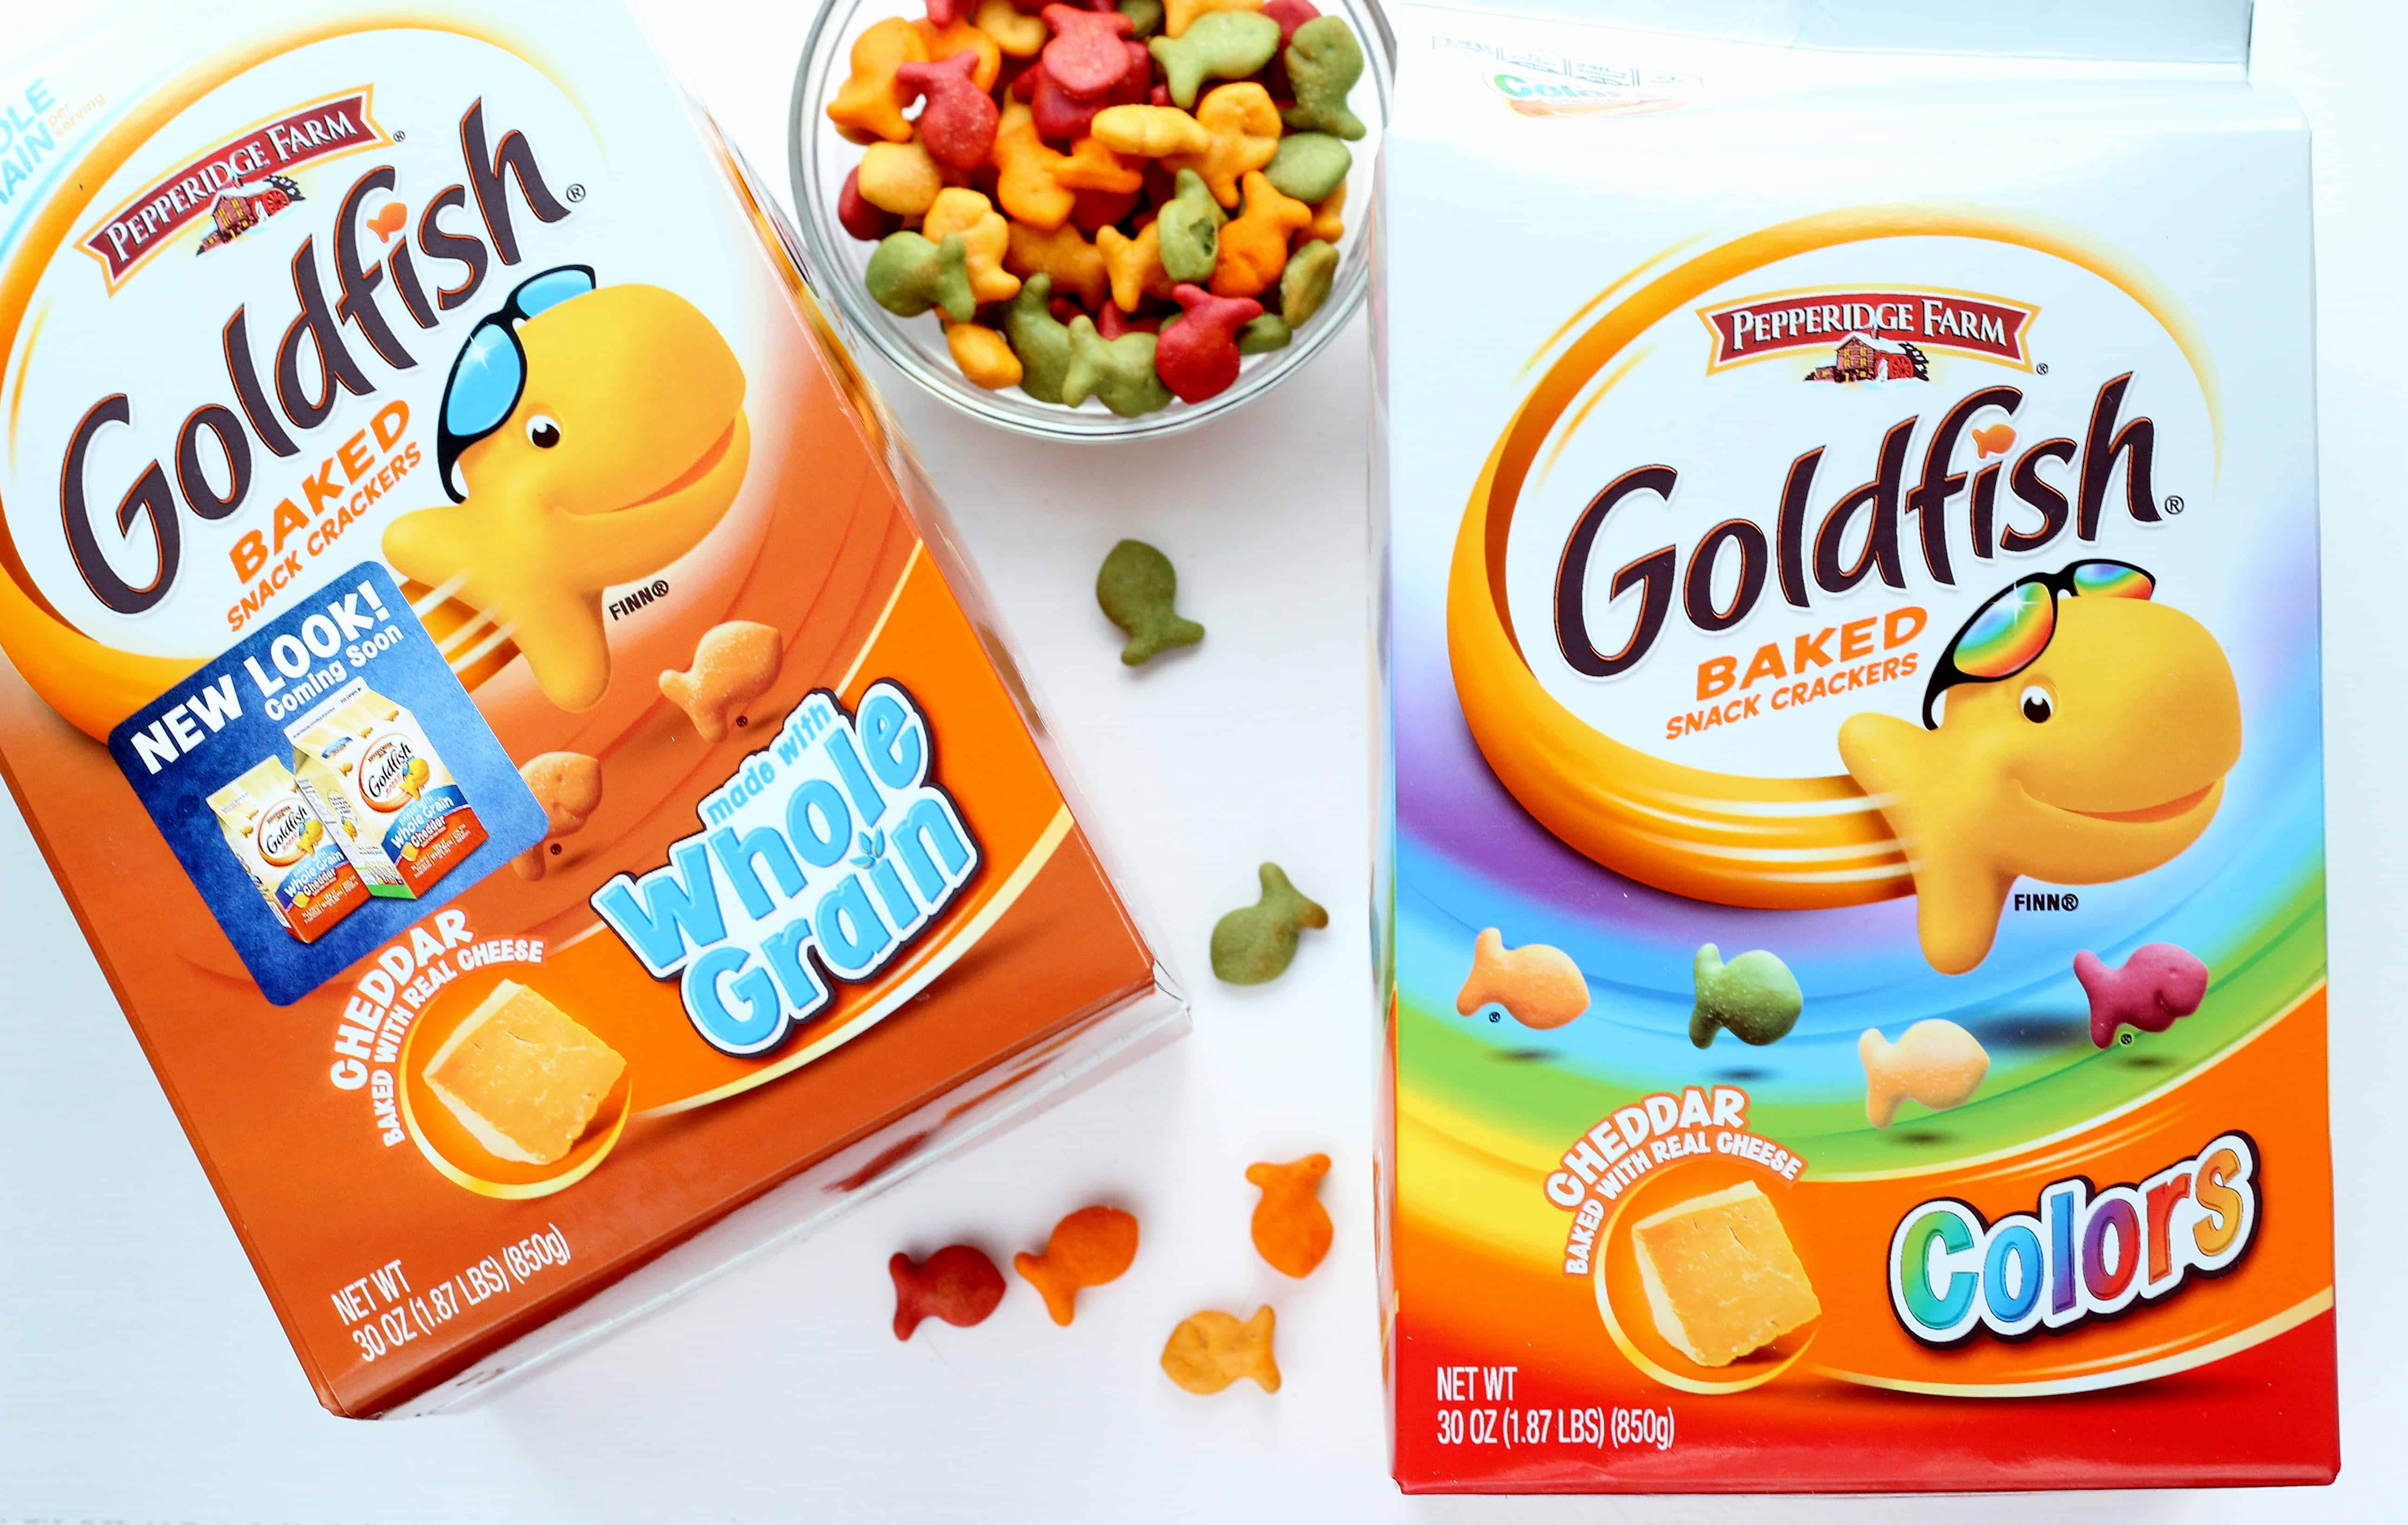 Easy goldfish crackers snack life a little brighter for Gold fish snacks